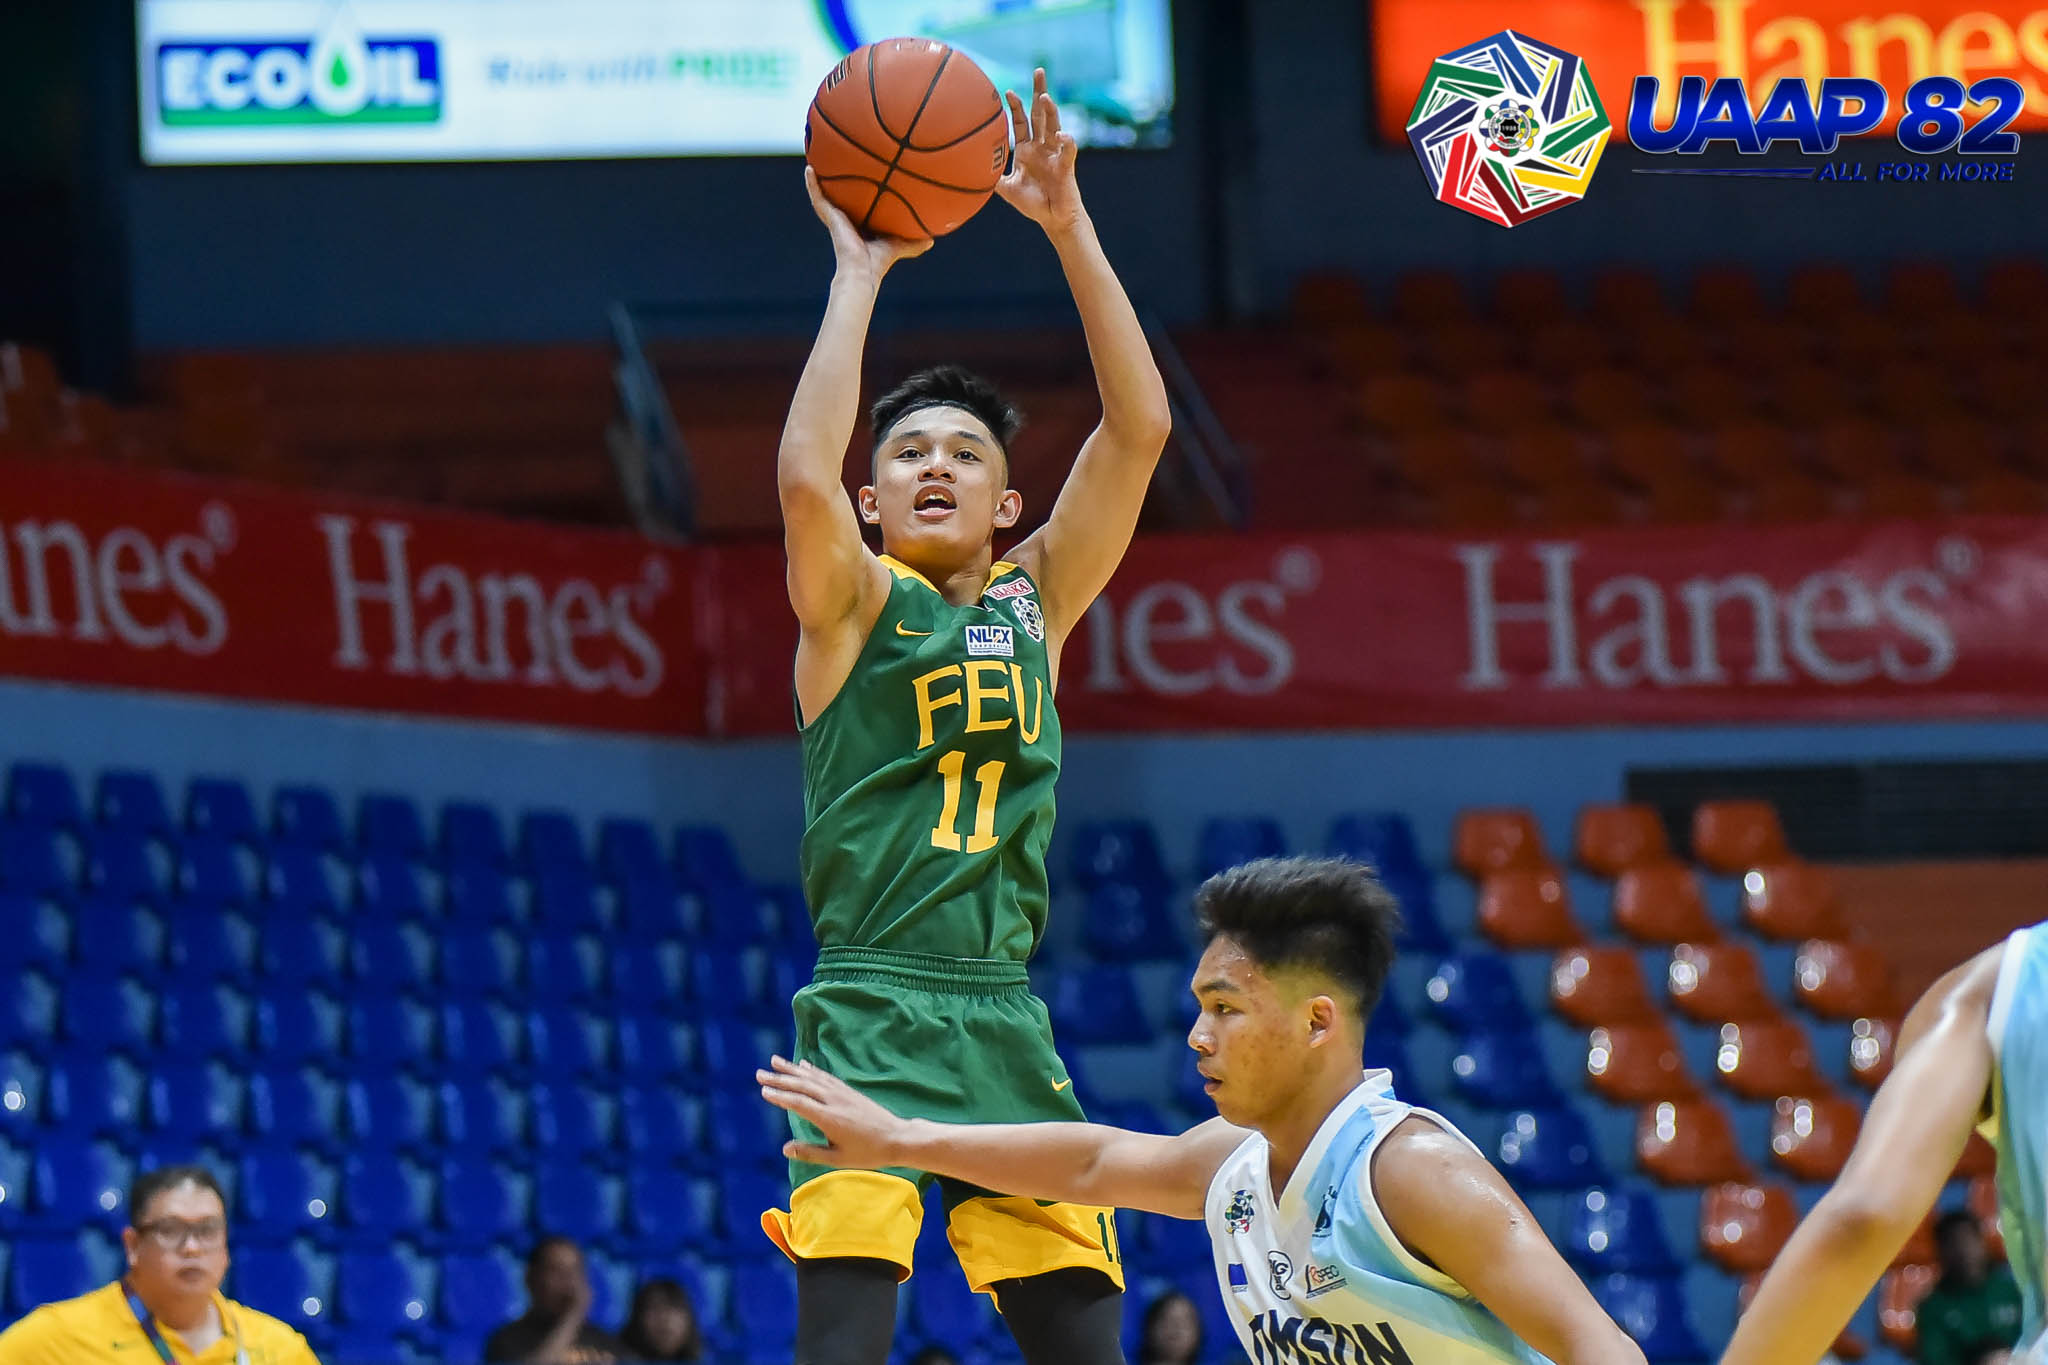 UAAP-Jrs-FEU-vs.-ADU-Estacio-9736 NU Bullpups weather Padrigao's 30-point explosion to go to 8-0 ADMU AdU Basketball DLSU FEU News NU UAAP UE UP UST  - philippine sports news